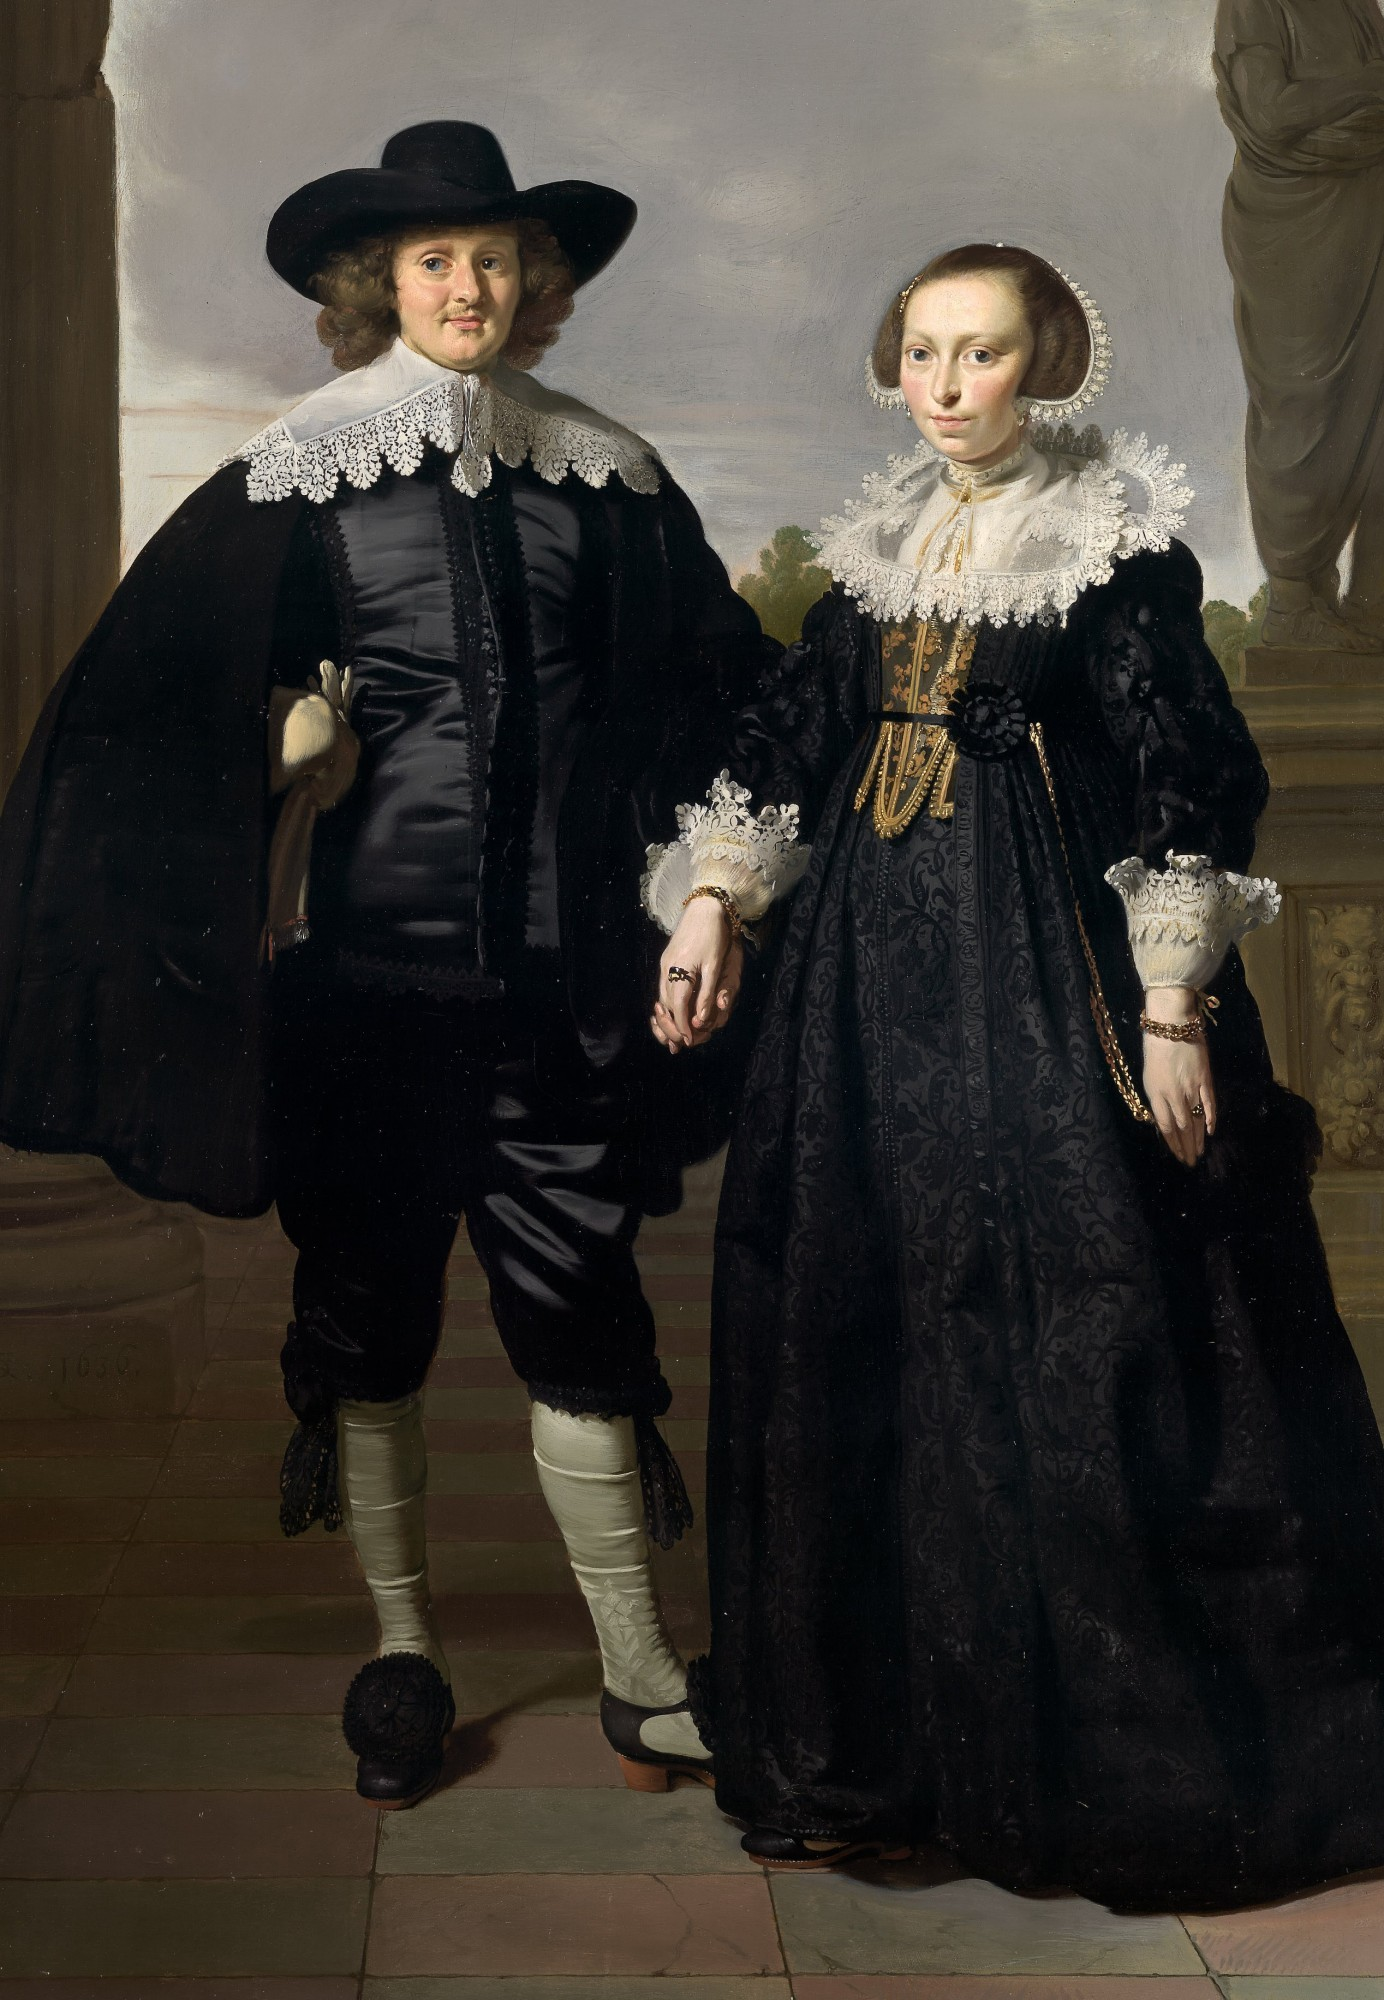 Frederick Van Velthuysen And His Wife Josina. Thomas de Keyser.